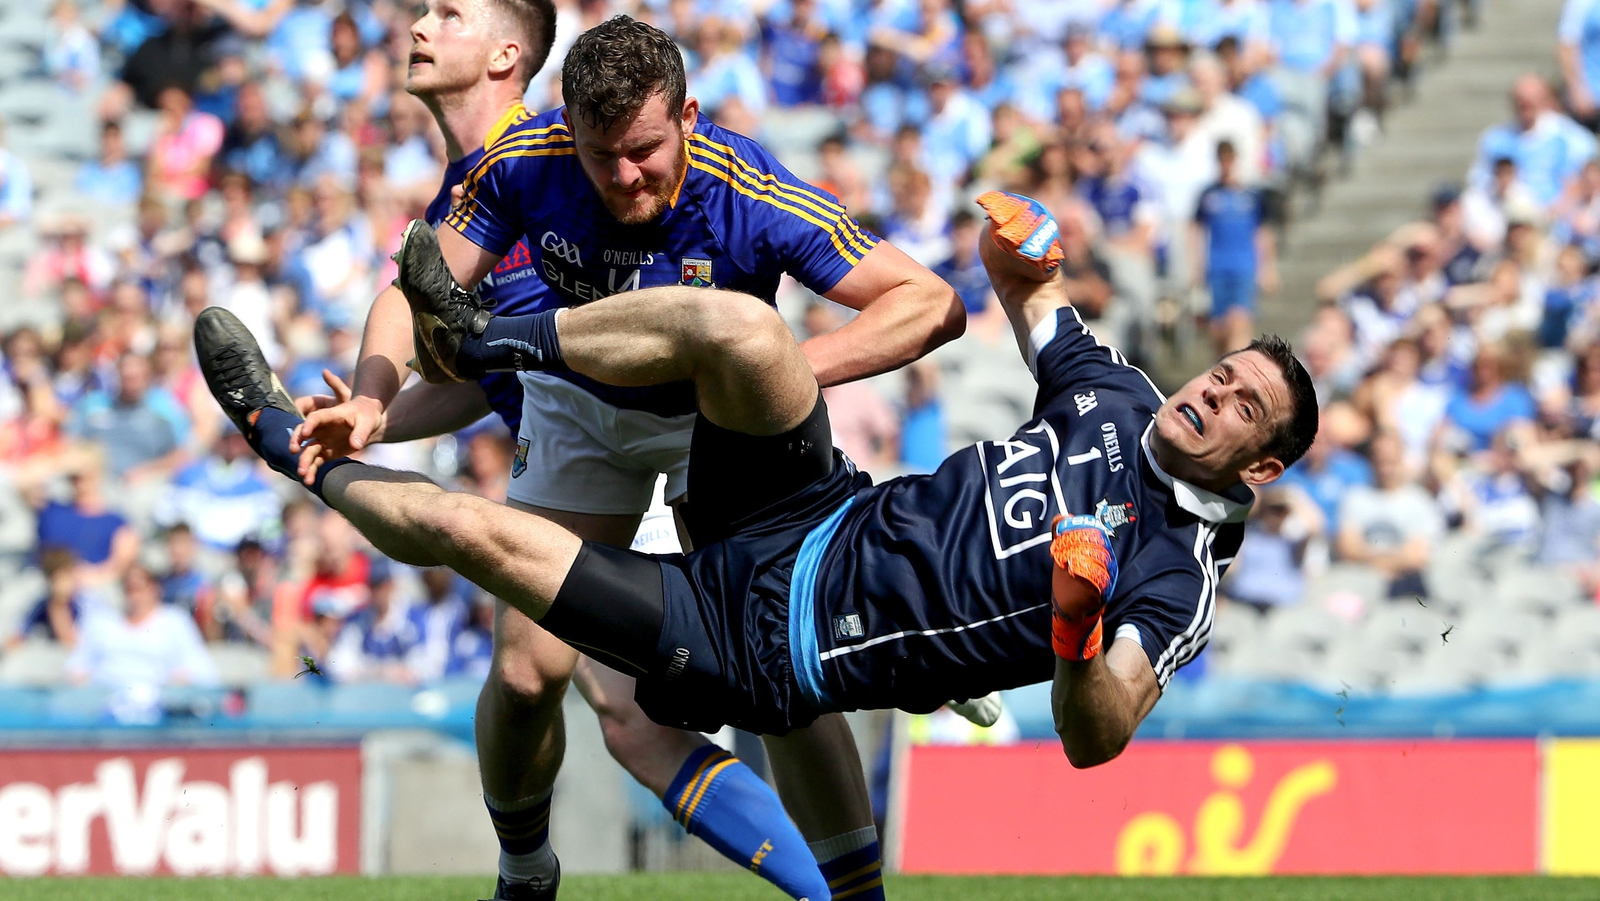 Image - Stephen Cluxton did not recover from an injury suffered in the Leinster semi-final win over Longford